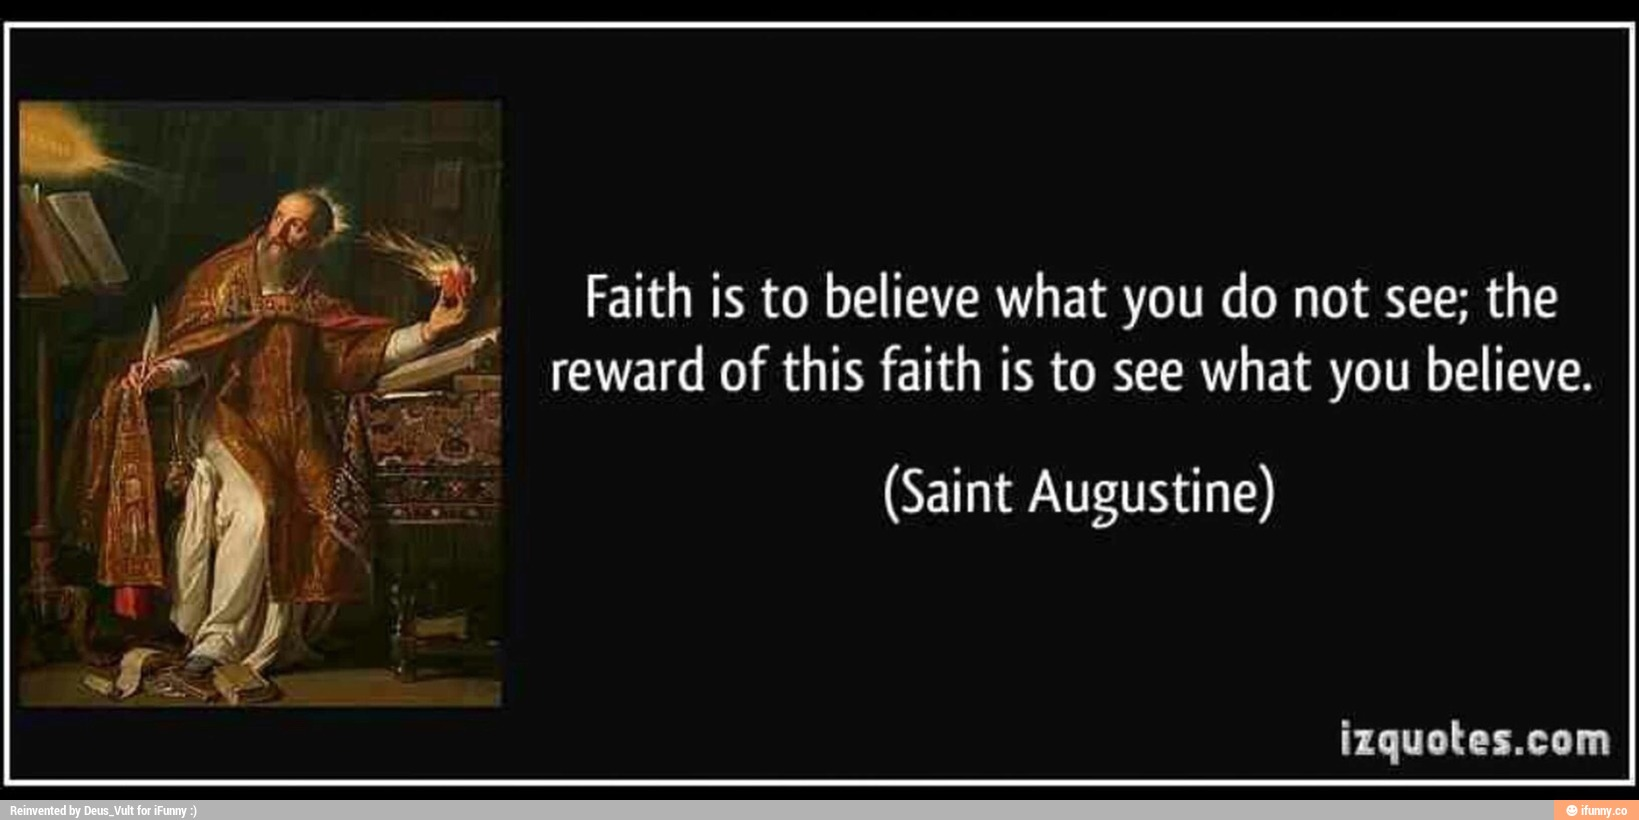 an argument in favor of saint augustines dilemma on love